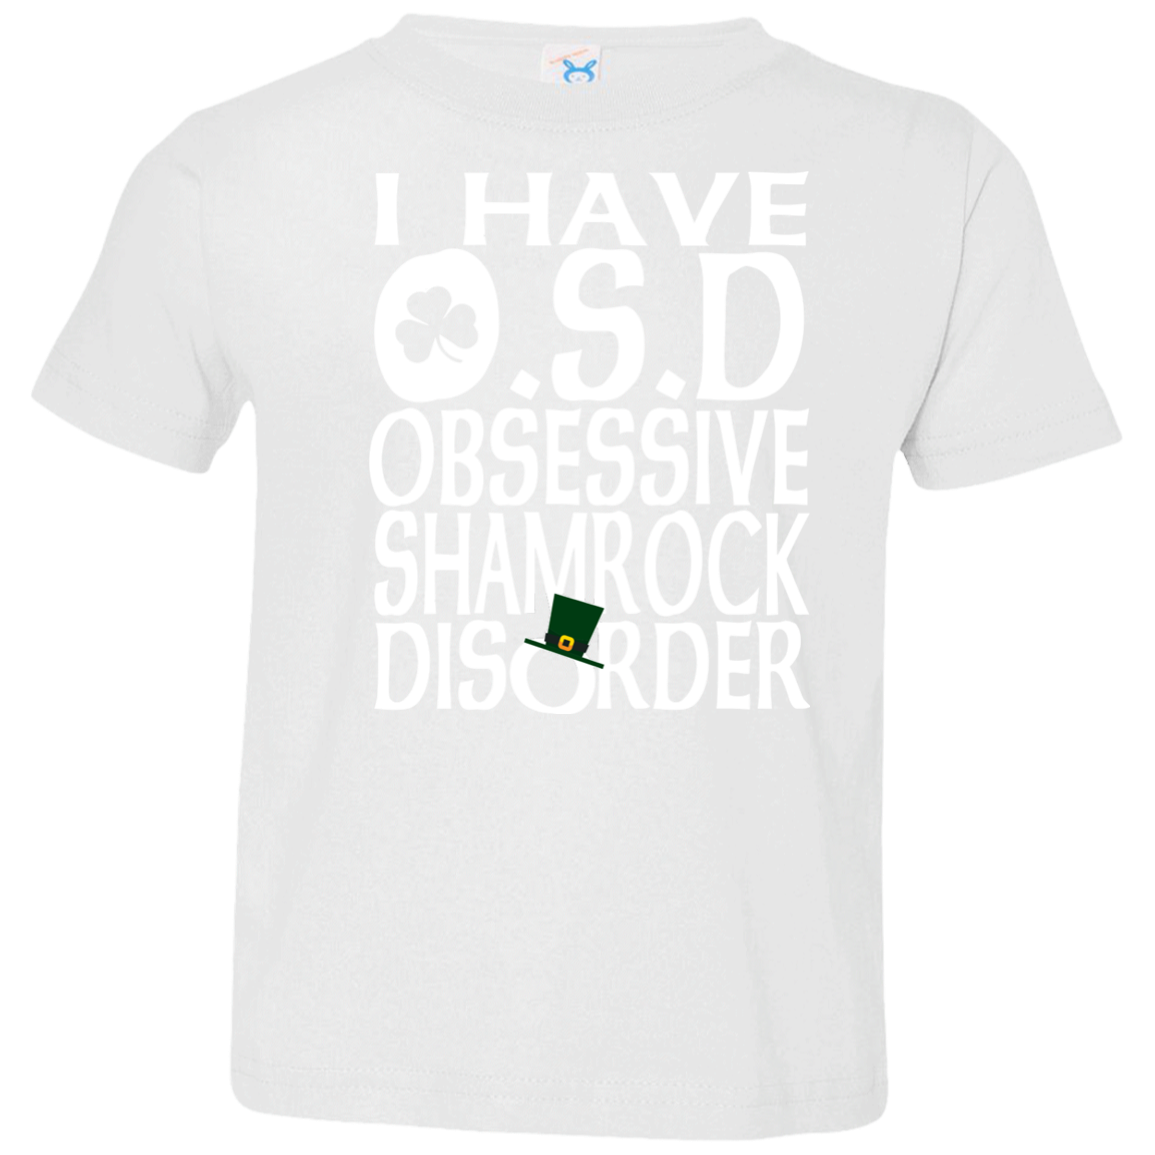 Shamrock Obsessive Disorder Irish St Patricks Day Clothing St Patrick's Day Shirts Hoodies For Women And Men - Blue Fox